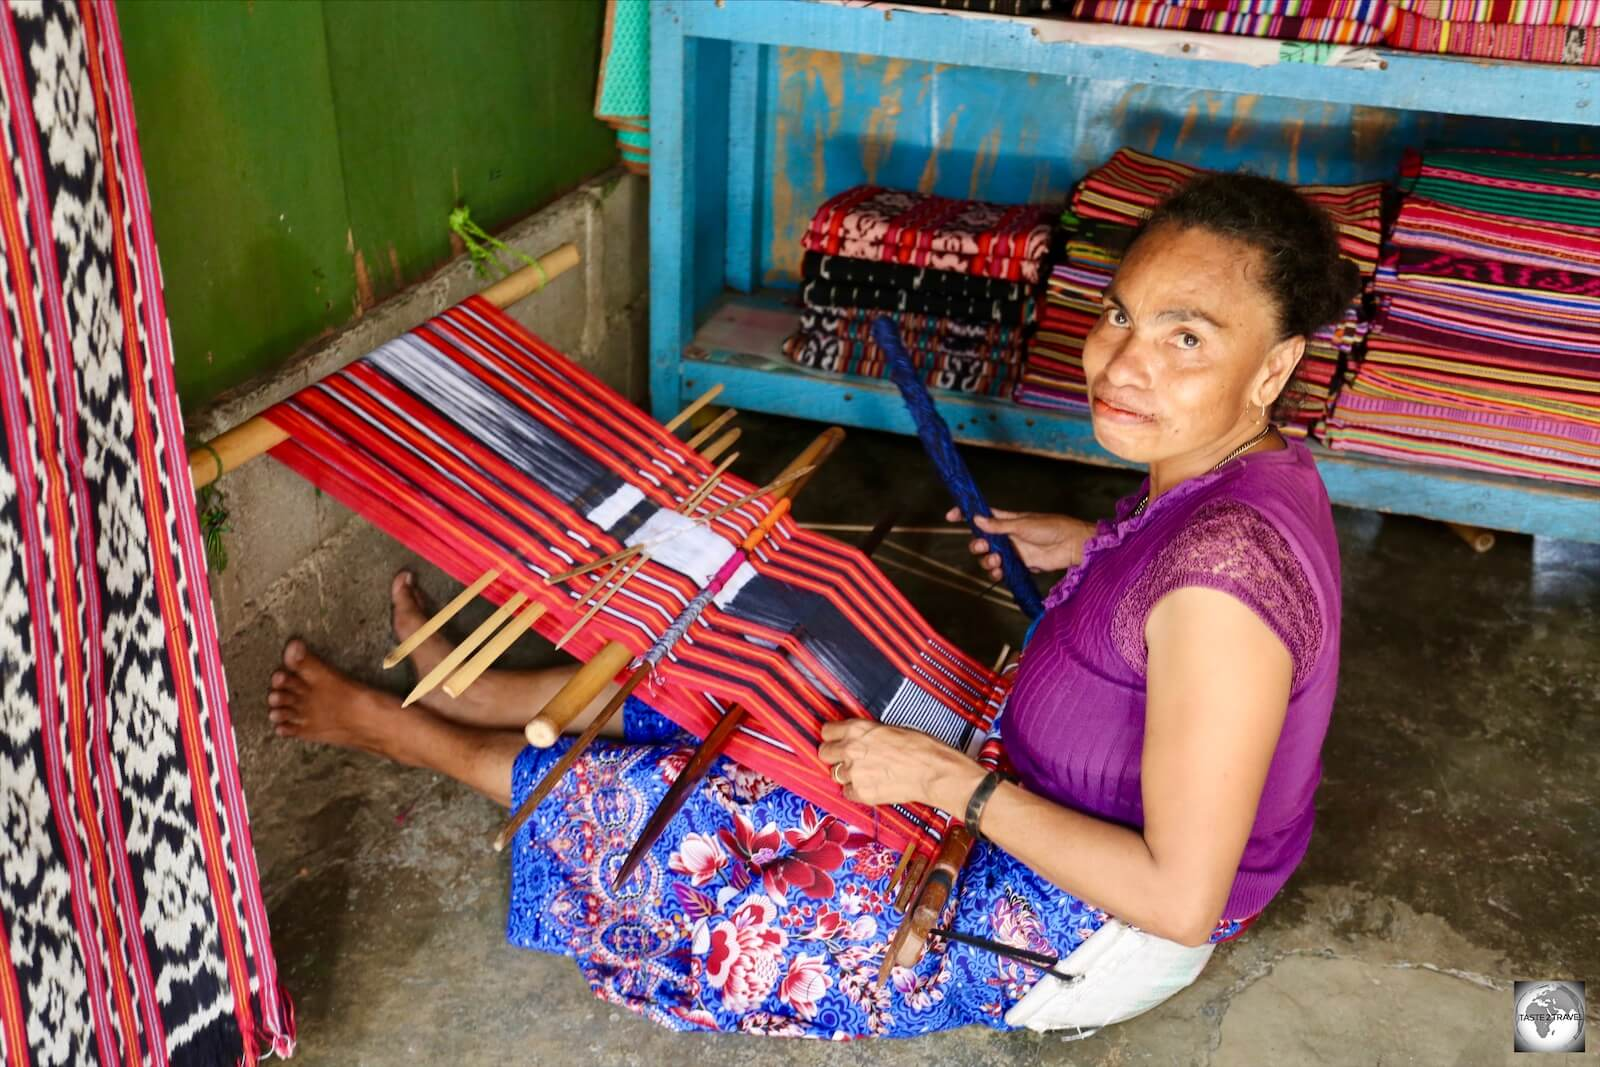 One of the store owners weaving some Tais cloth during a quiet moment.